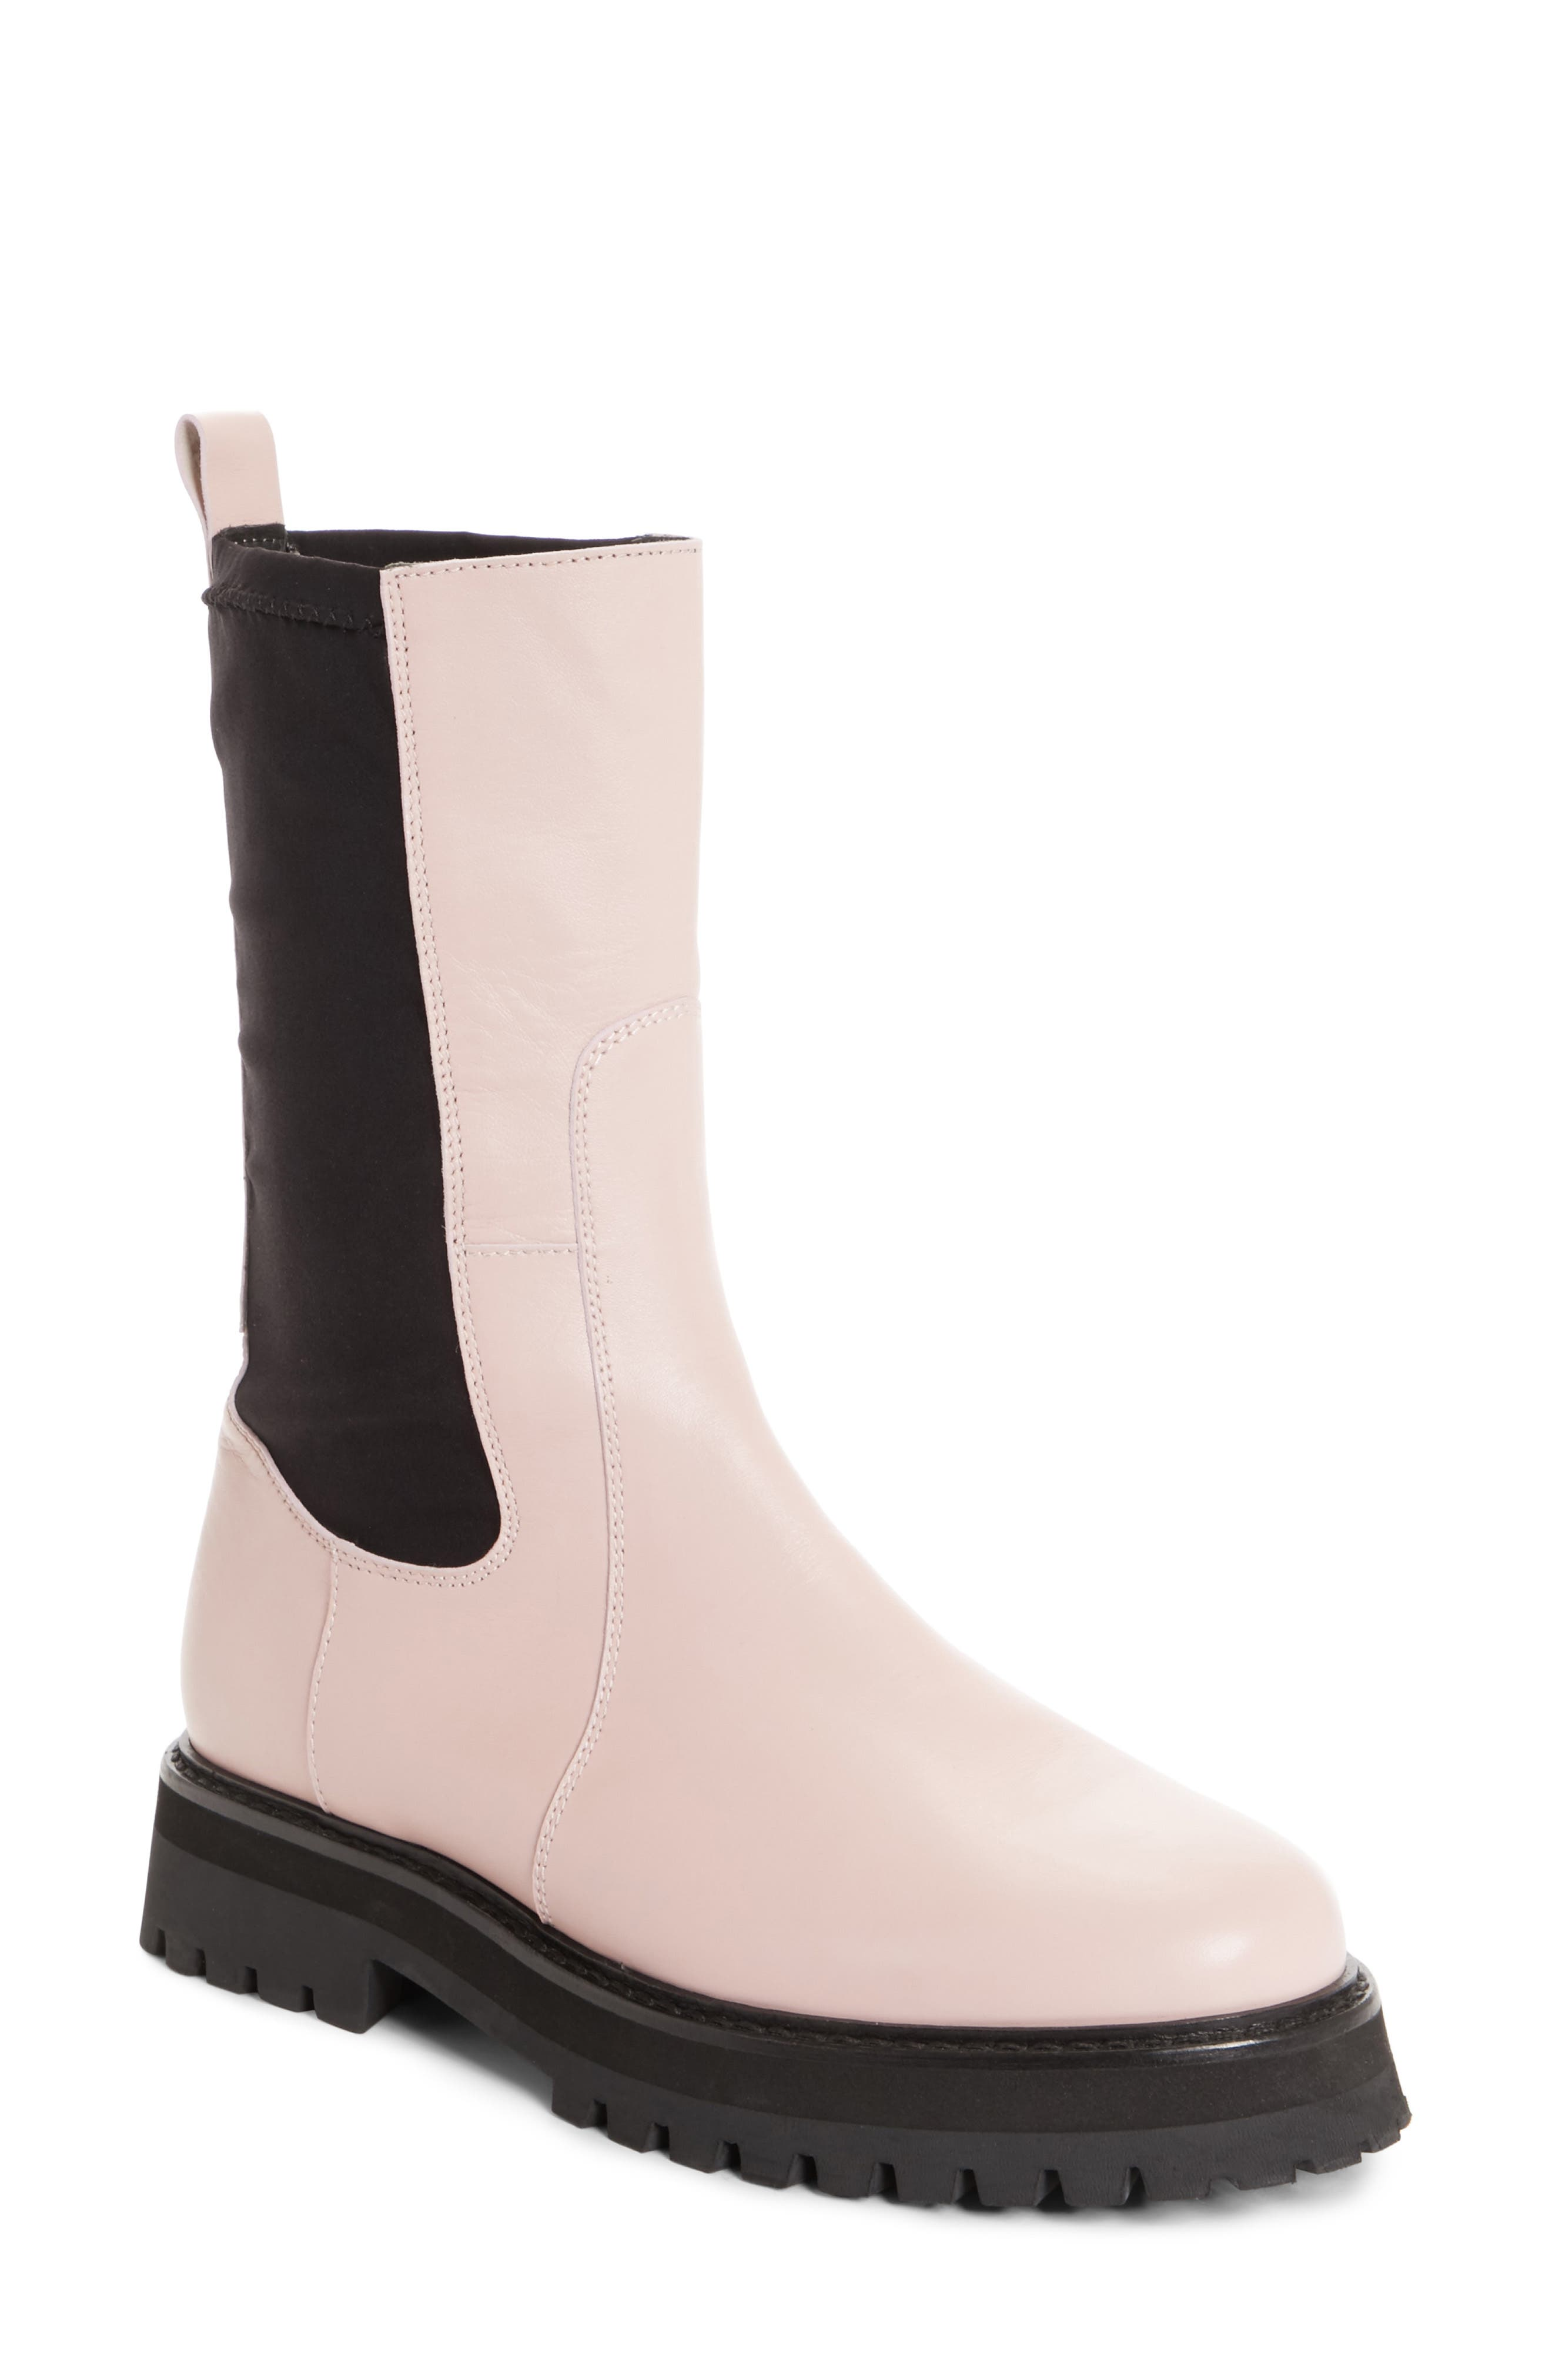 Marques'Almeida Army Boot,                             Main thumbnail 1, color,                             Pale Pink